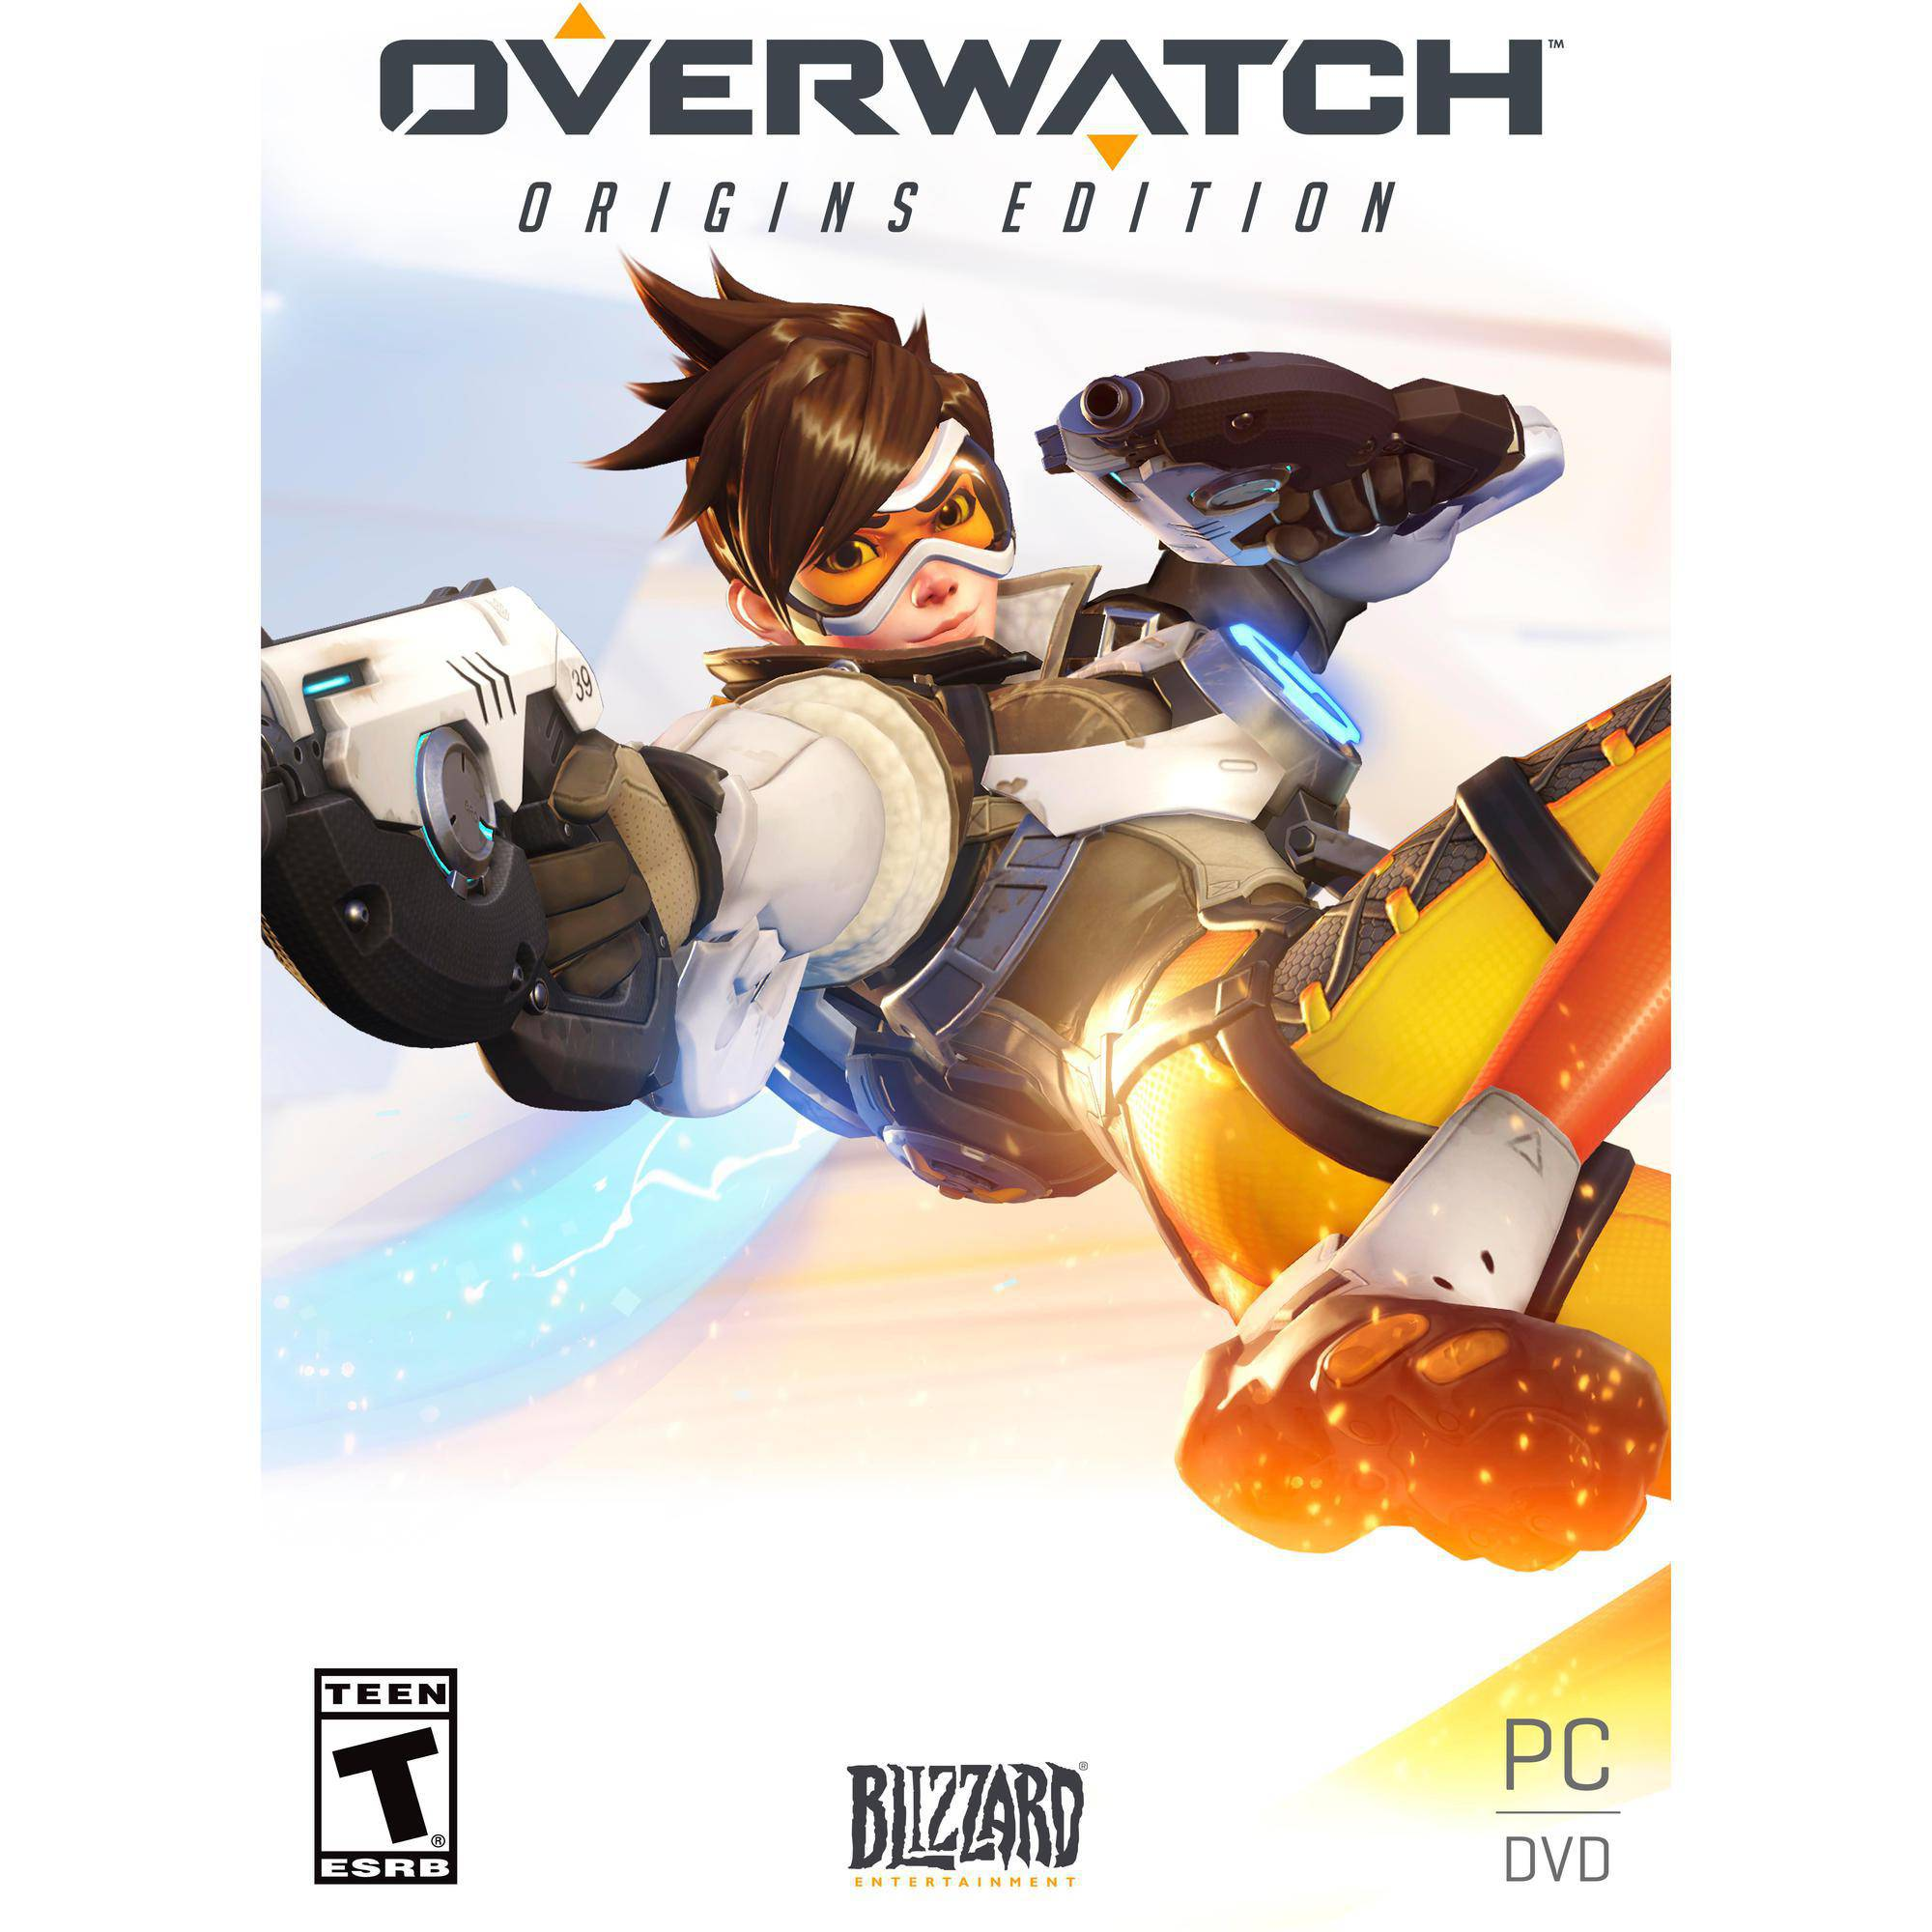 Overwatch Origins Edition (PC)